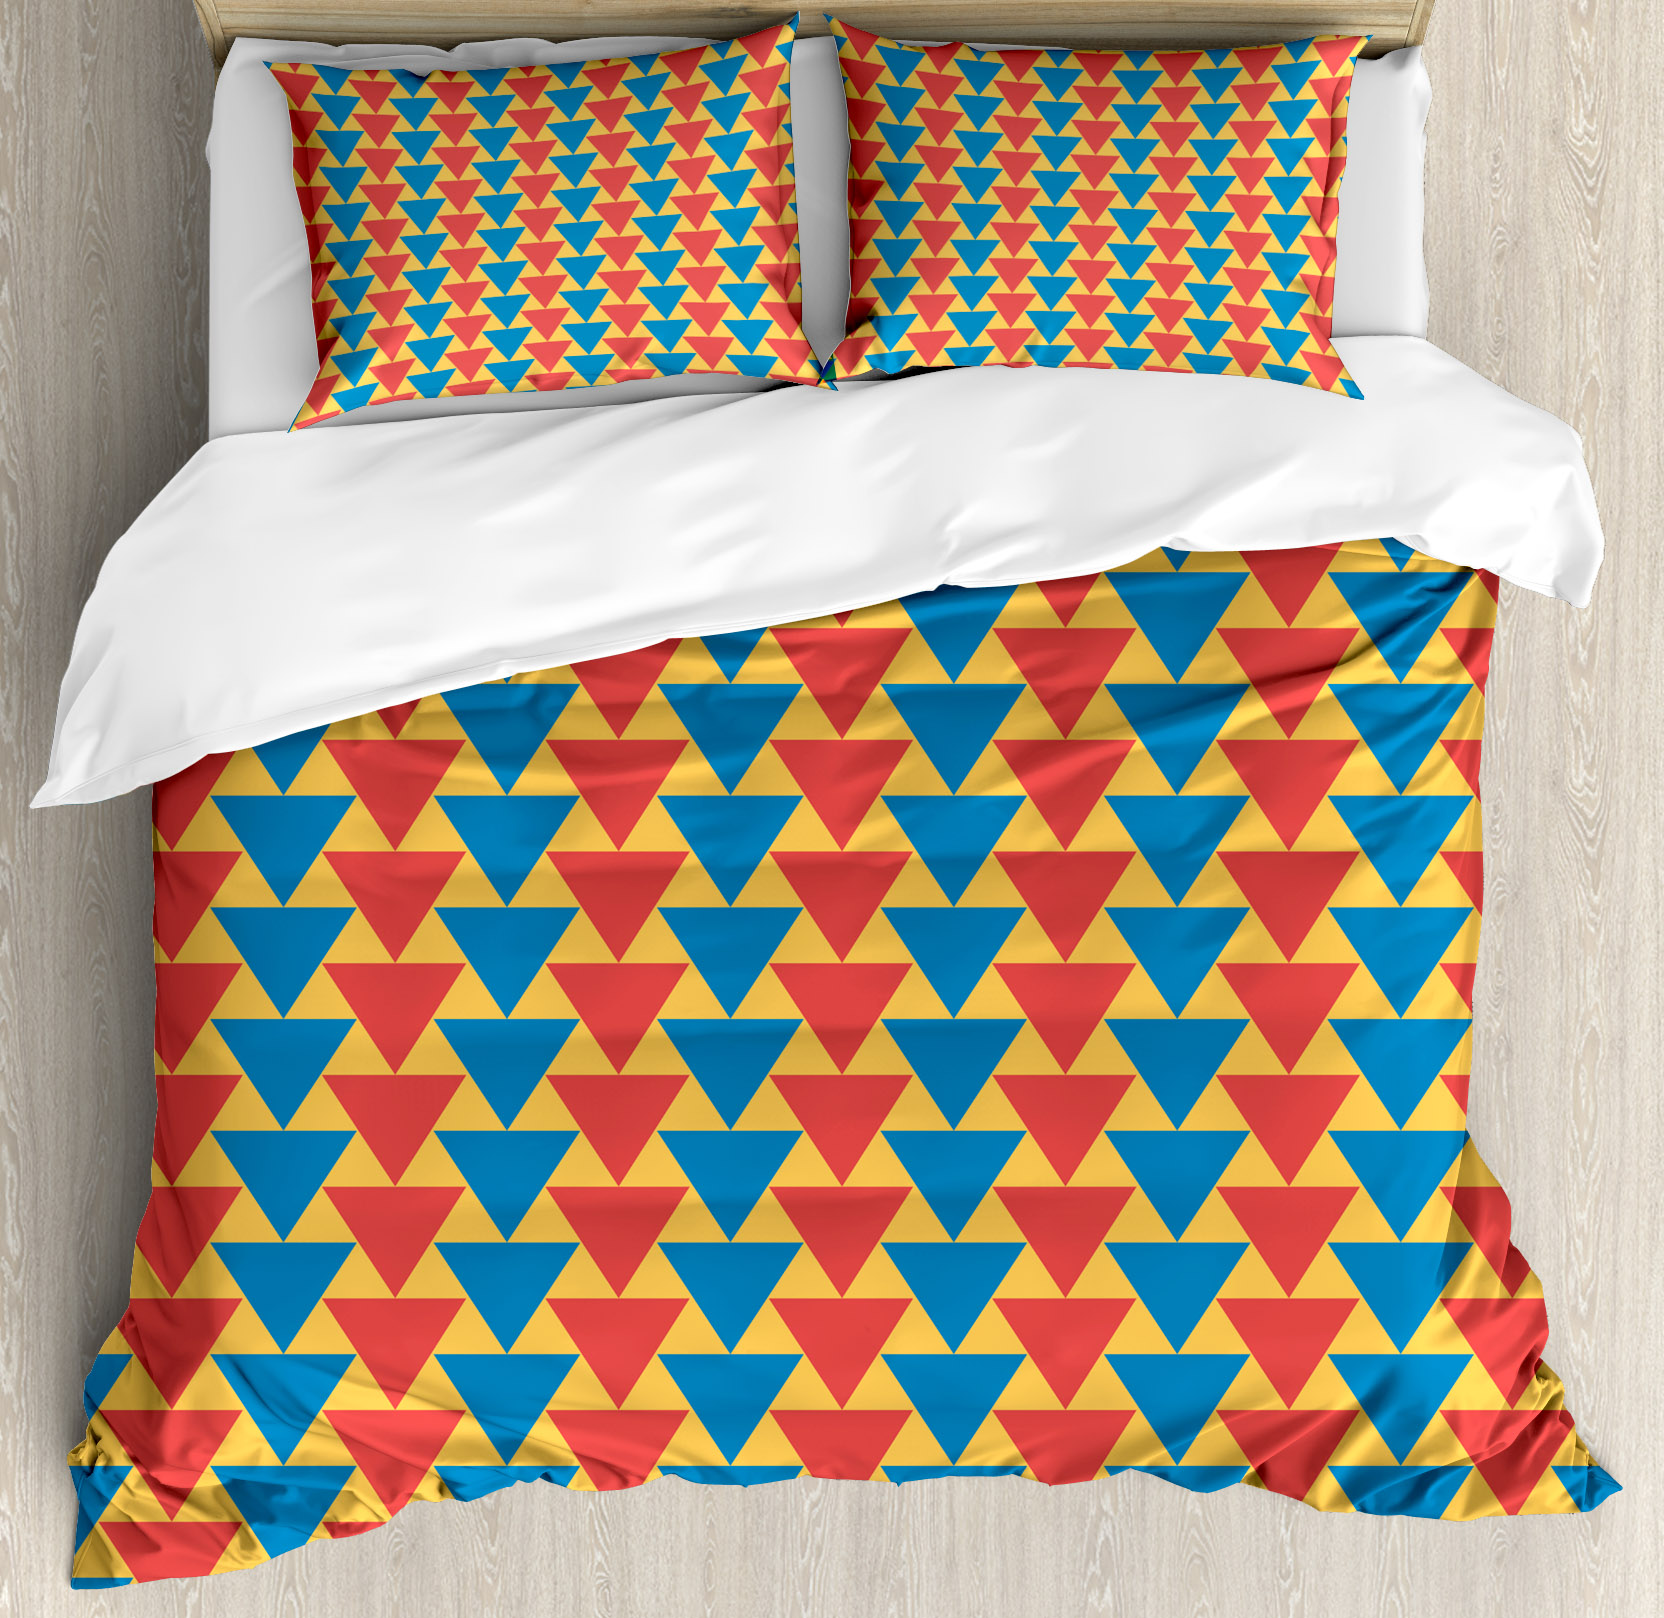 Kids Queen Size Duvet Cover Set, Triangles Downwards Vertical Geometrical Pattern Shabby Colored Retro Tile, Decorative 3 Piece Bedding Set with 2 Pillow Shams, Scarlet Blue Marigold, by Ambesonne